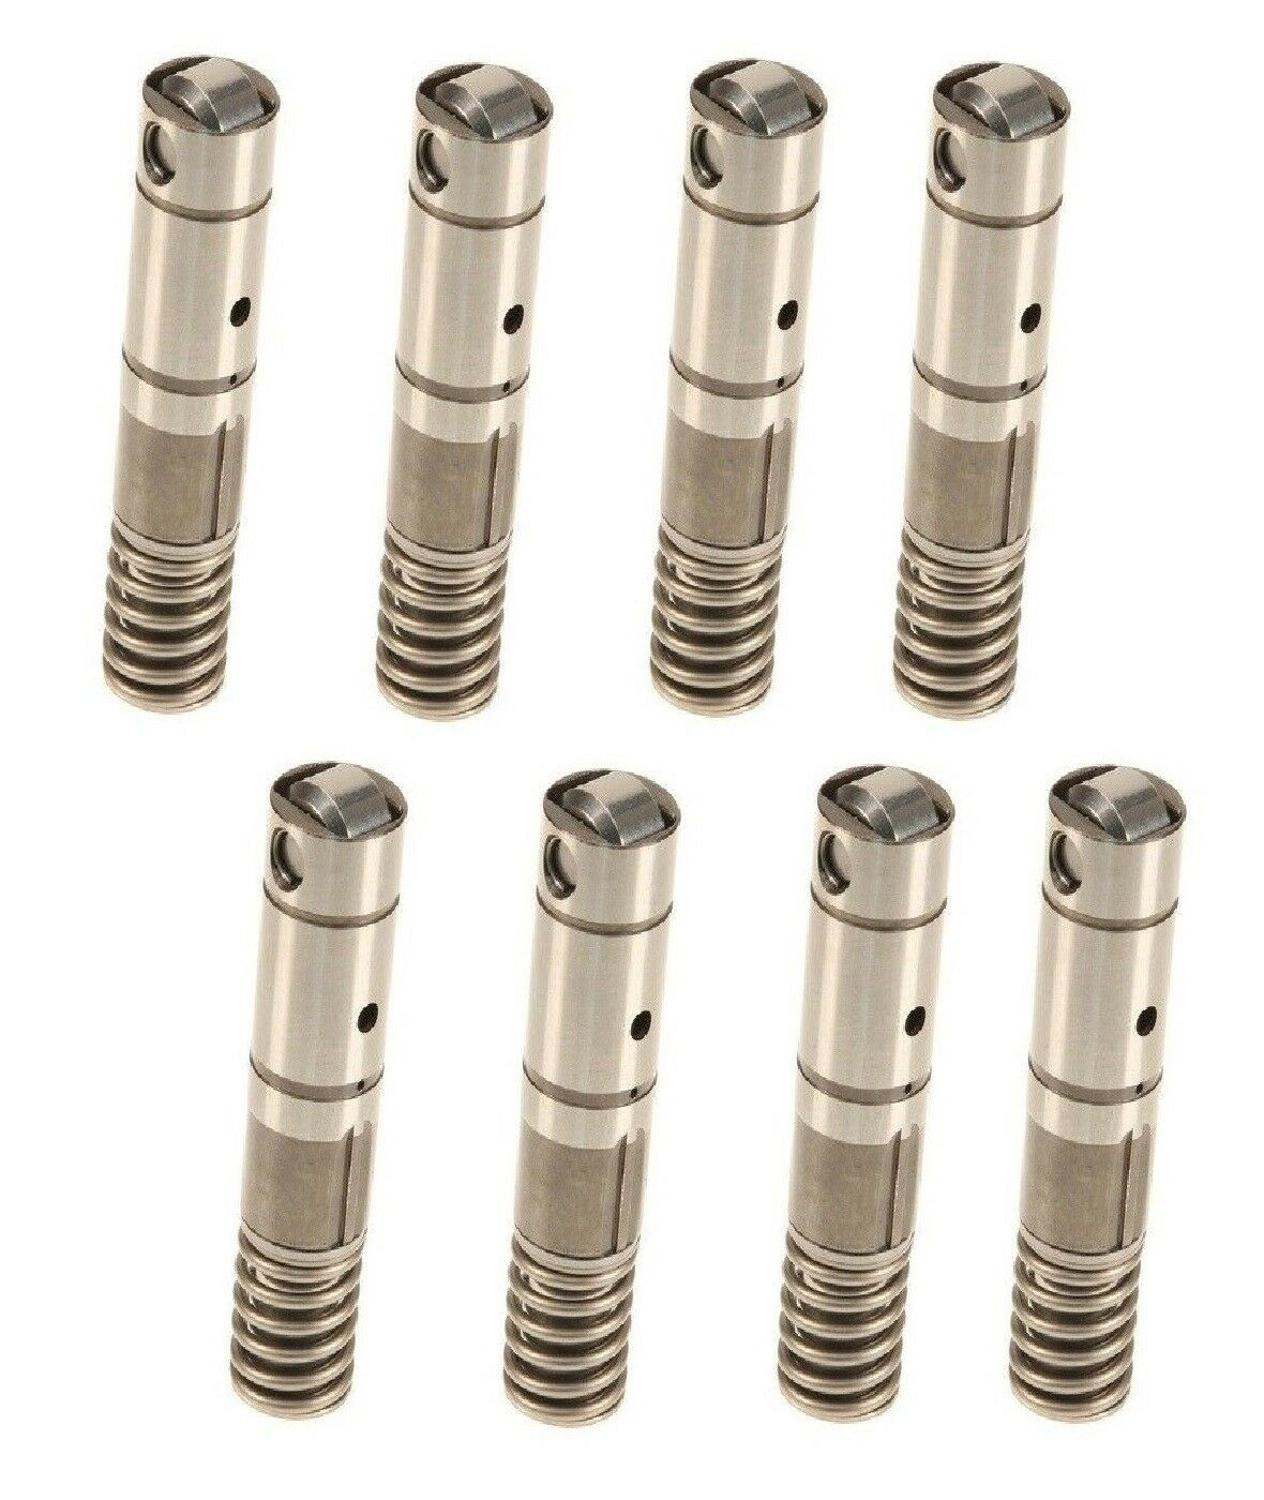 4PCS Engine Valve Lifter For Buick Cadillac GMC Pontiac V8|Valves & Parts| |  - title=